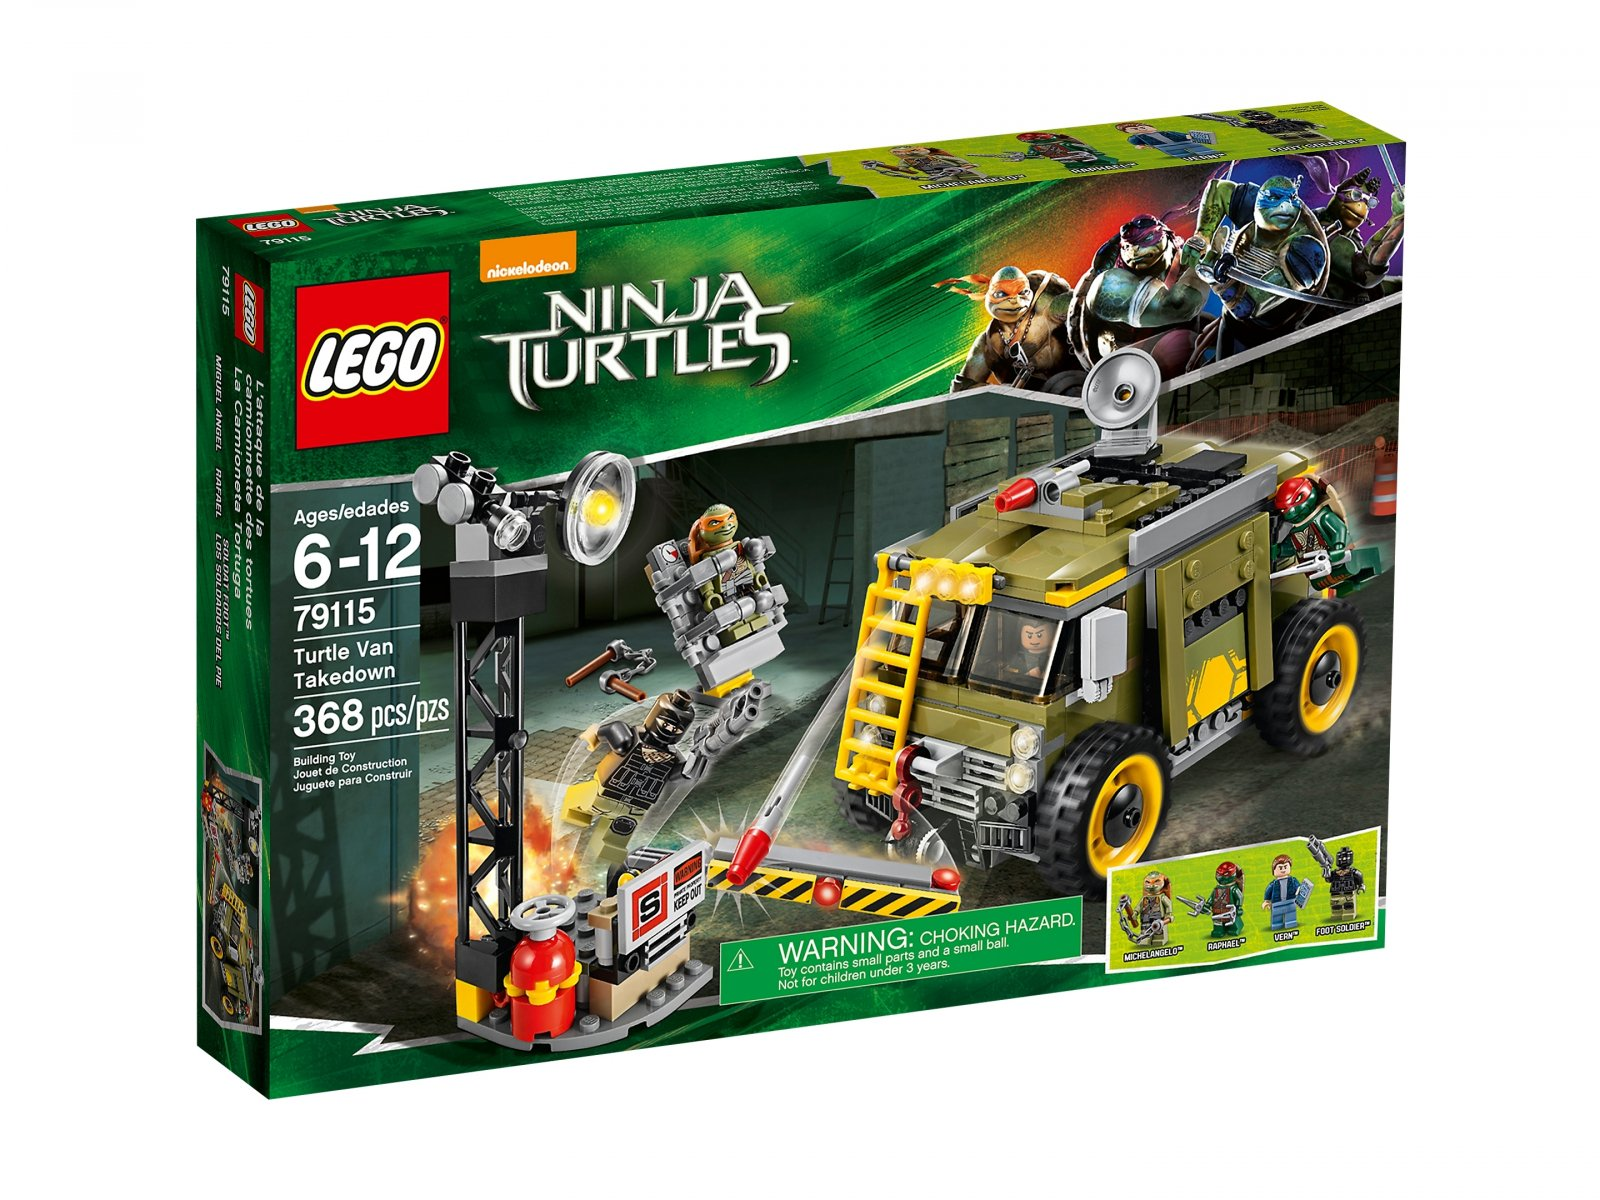 LEGO Teenage Mutant Ninja Turtles™ Furgonetka żółwi 79115